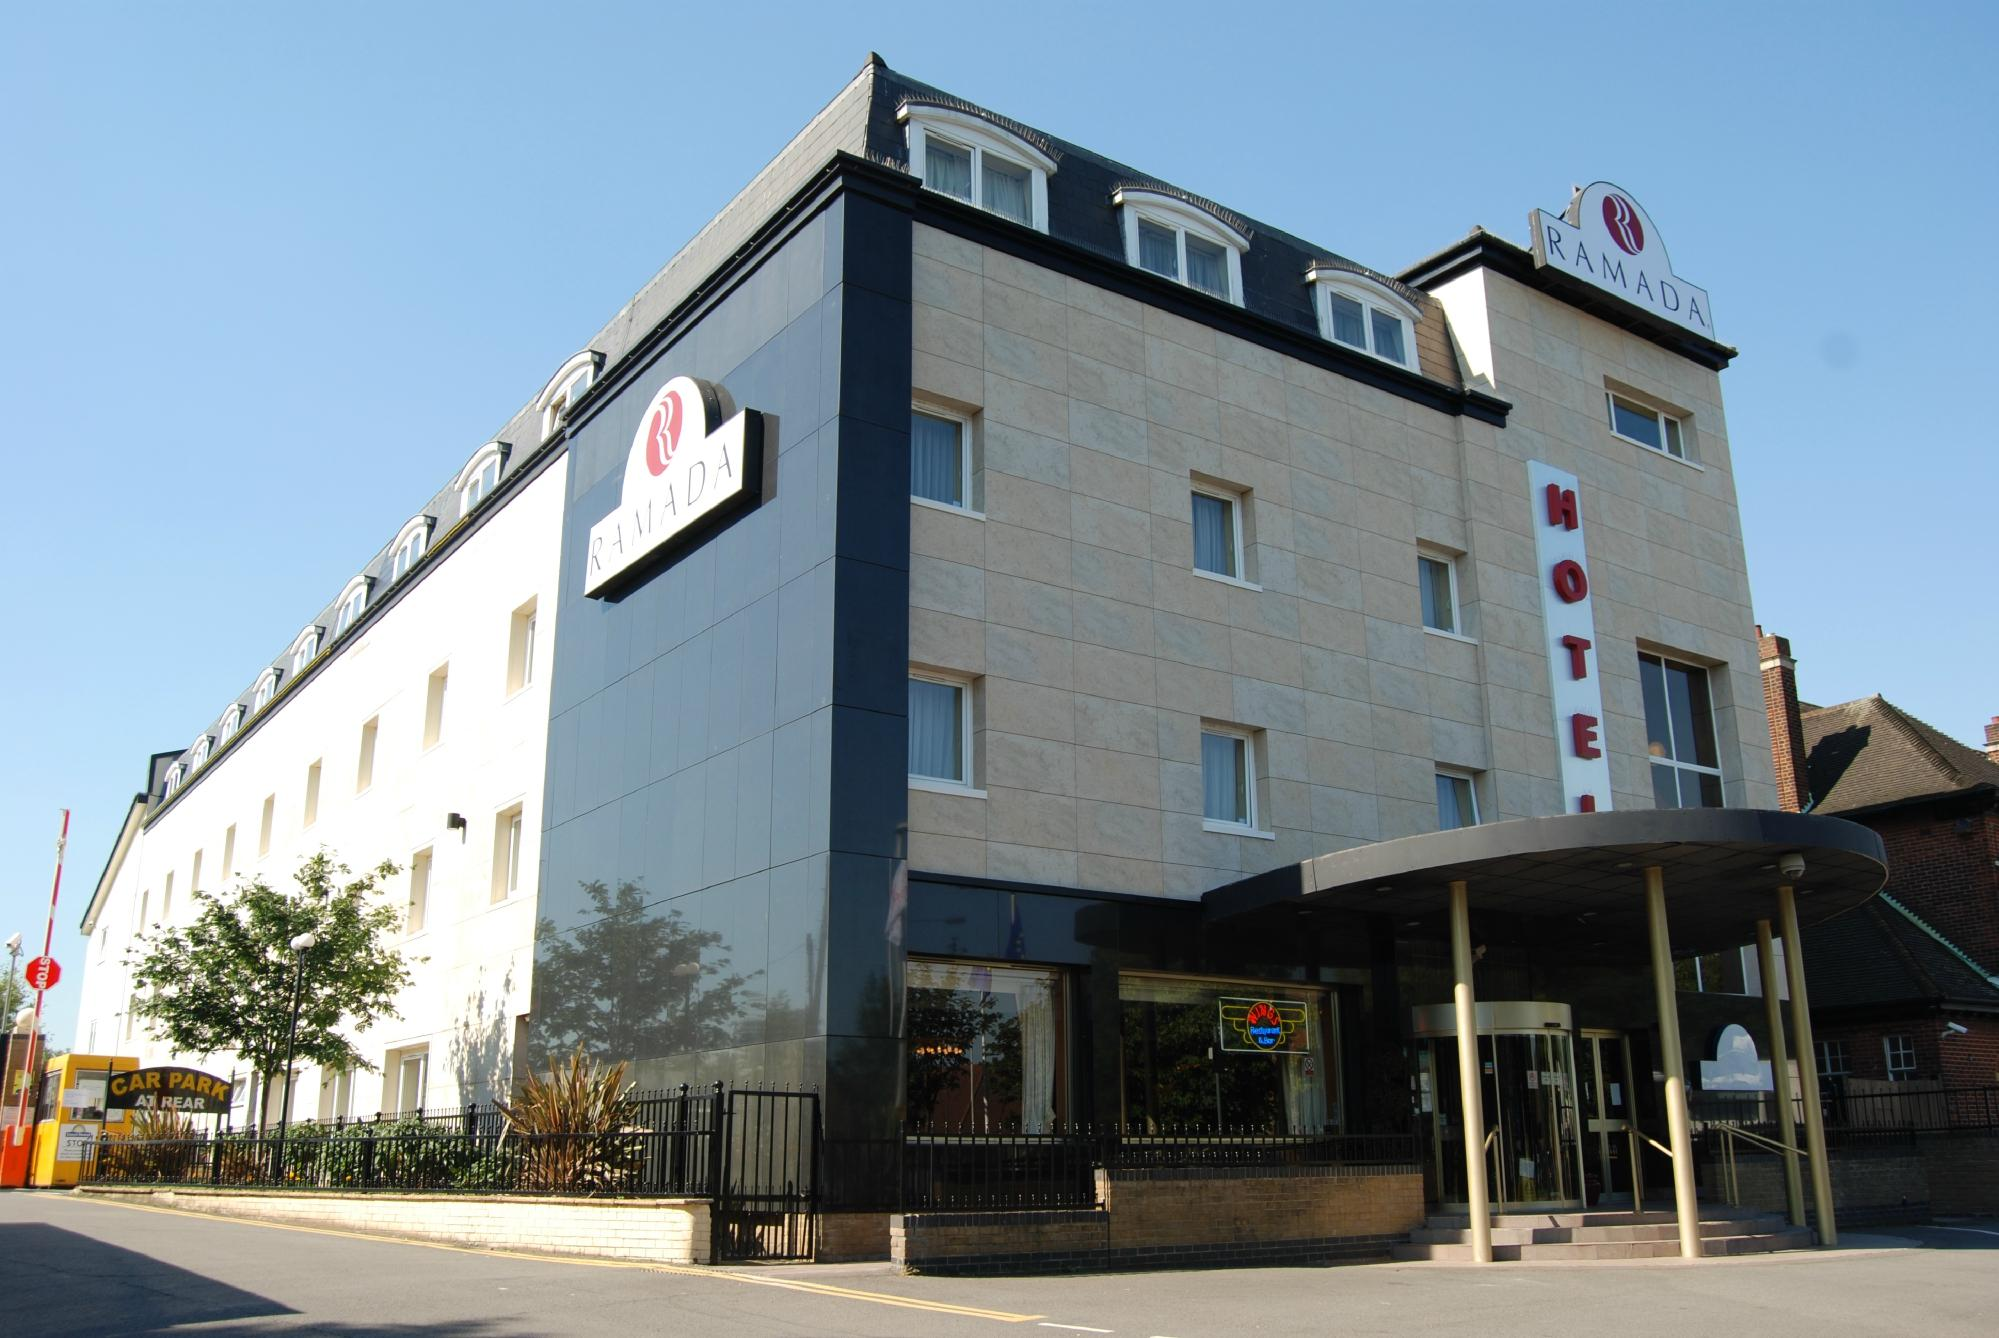 Ramada london south ruislip hotel reviews photos price comparison - Hotel ramada londres ...